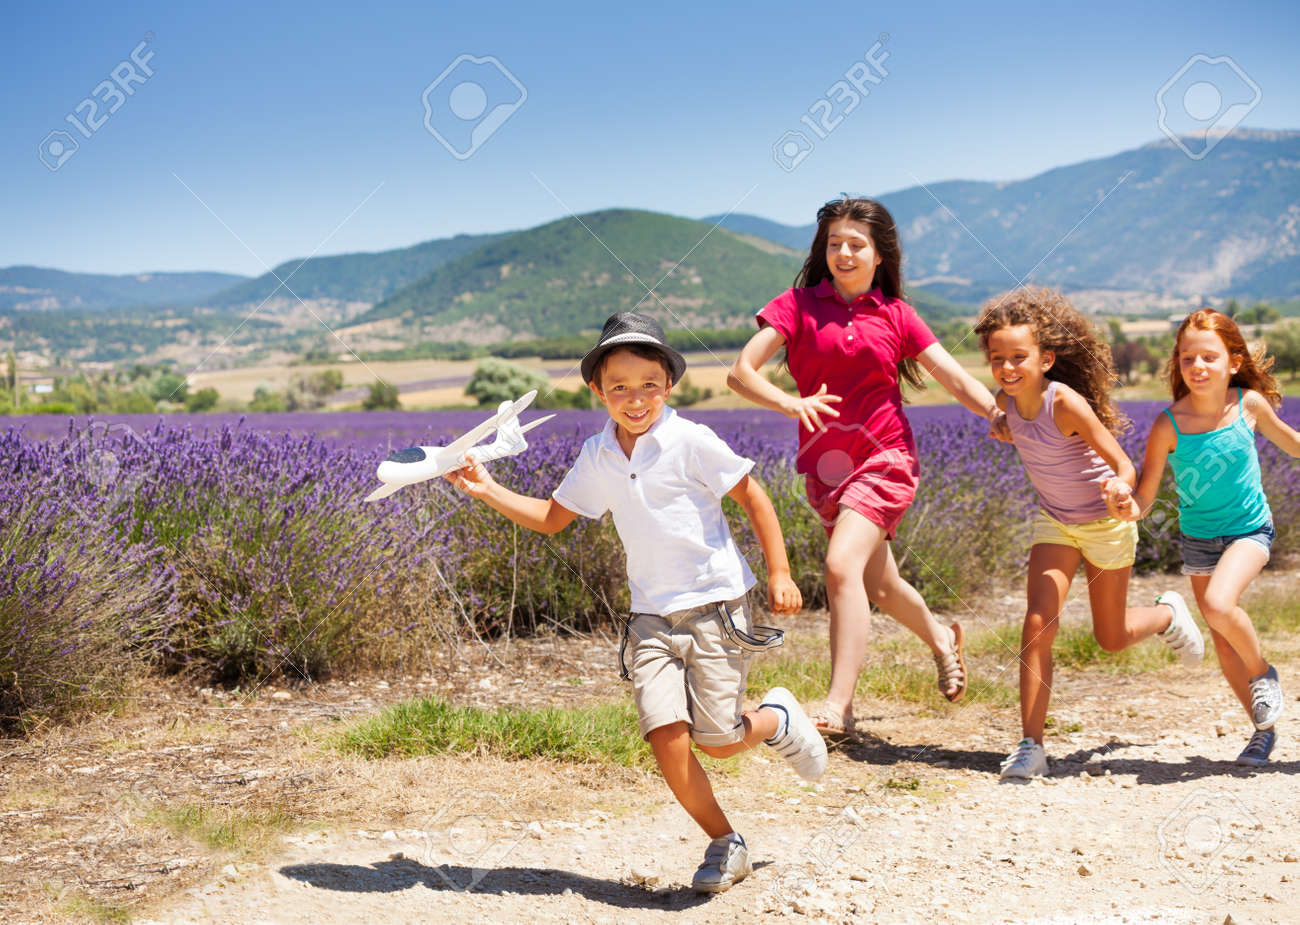 Three girls hurry after boy holding toy plane - 87407763